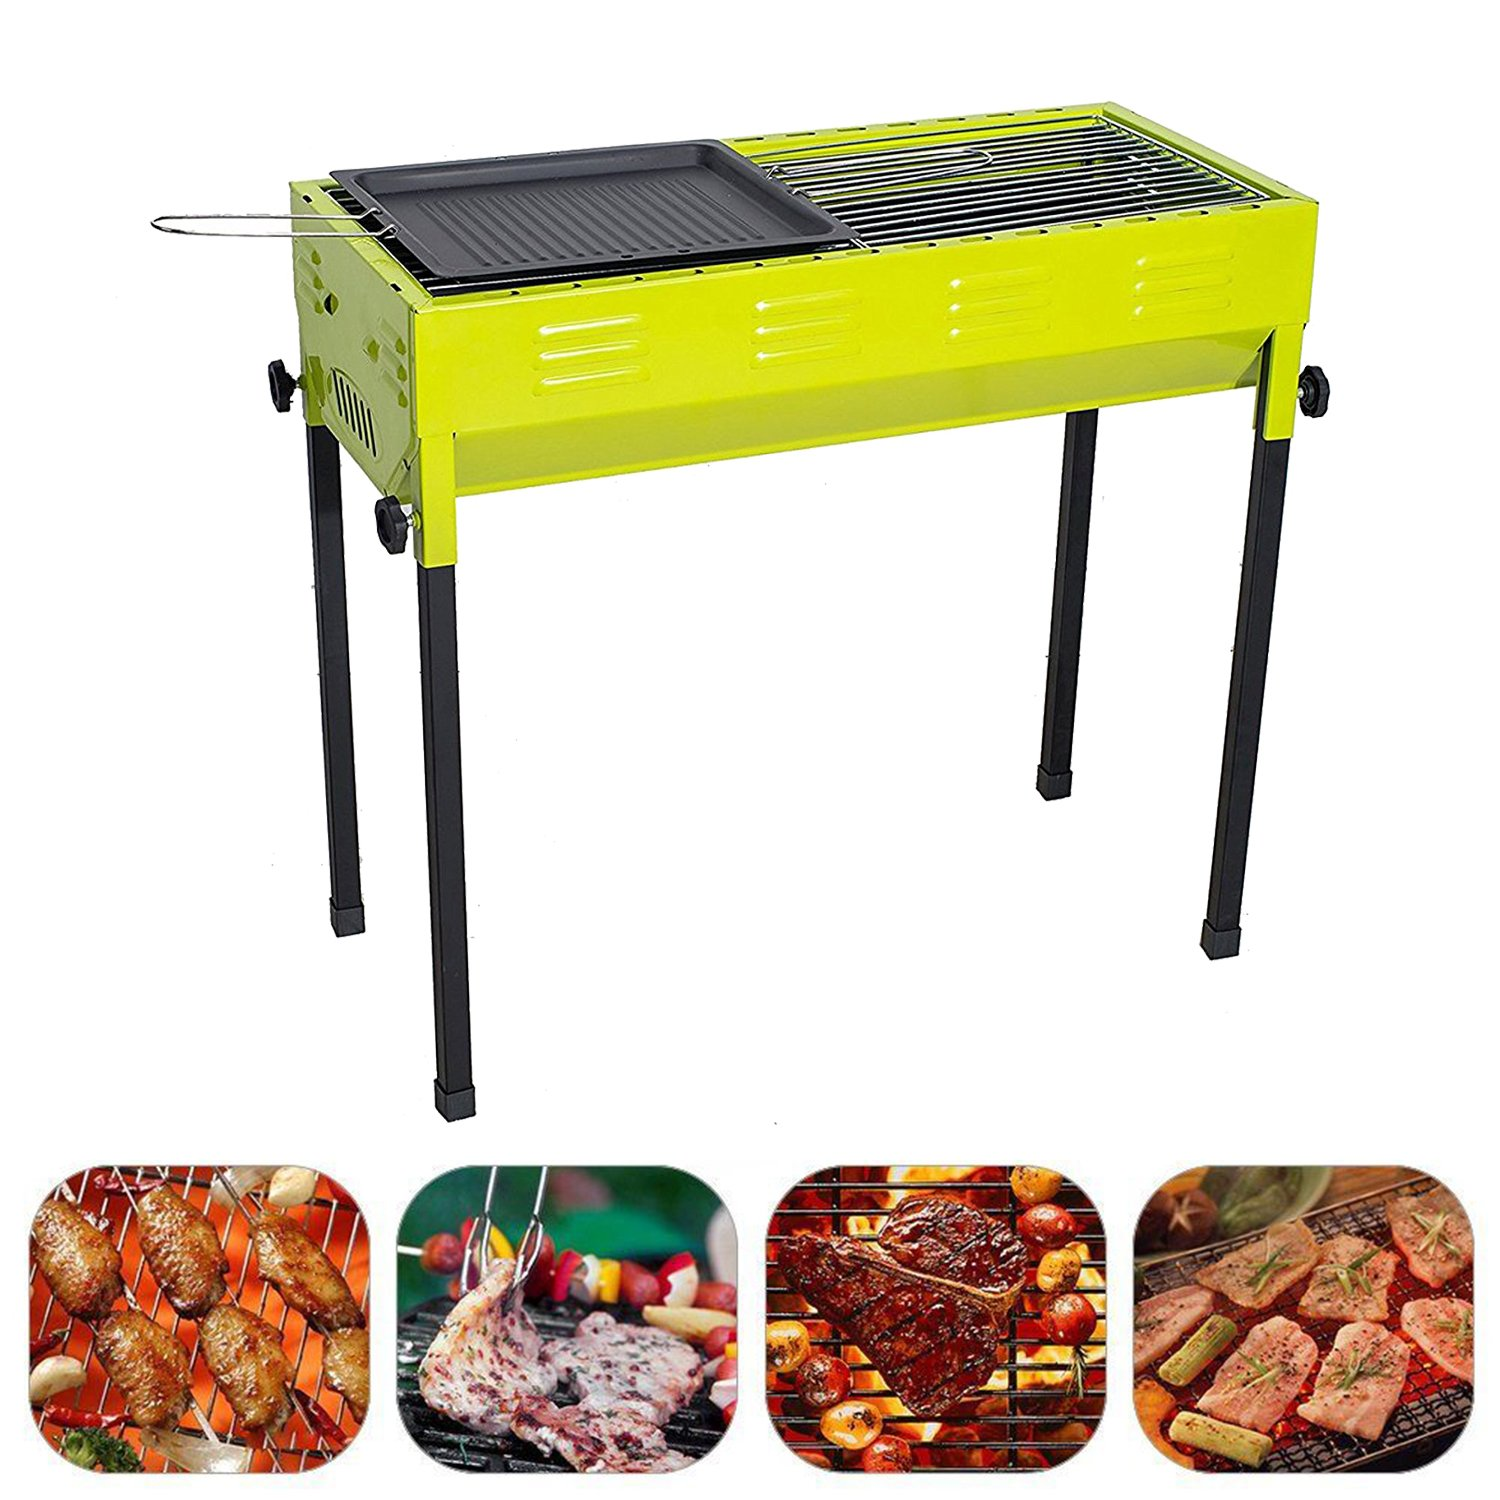 Camp Solutions BBQ Grill, Charcoal grill, Foldable and Portable Outdoor Grill, A Perfect Gift for Barbecue Lovers by Camp Solutions